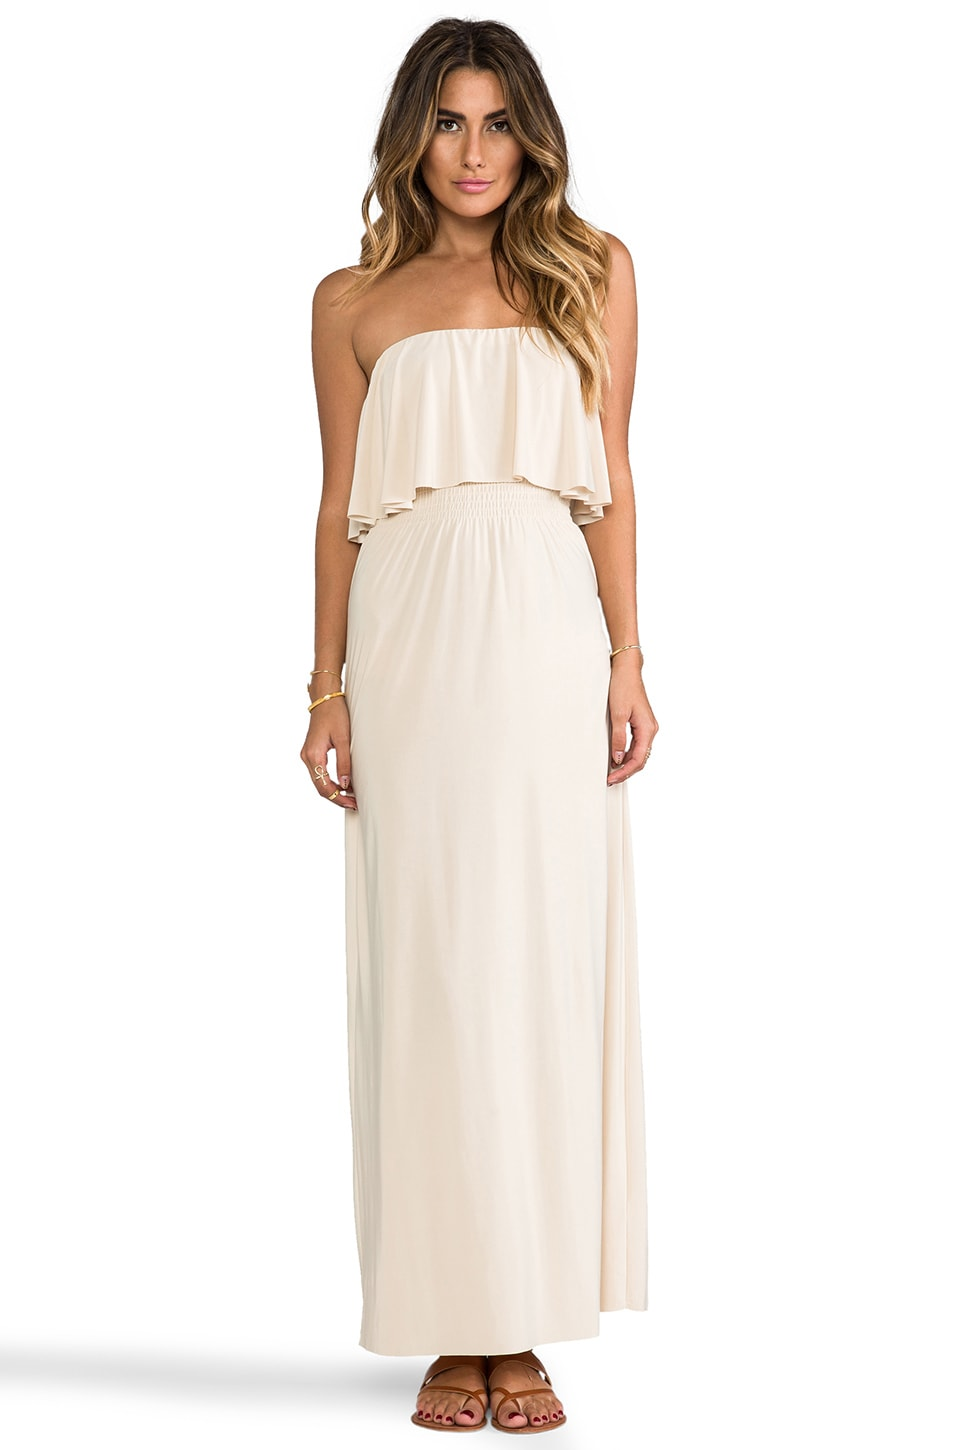 T-Bags LosAngeles Strapless Tiered Maxi in Cream